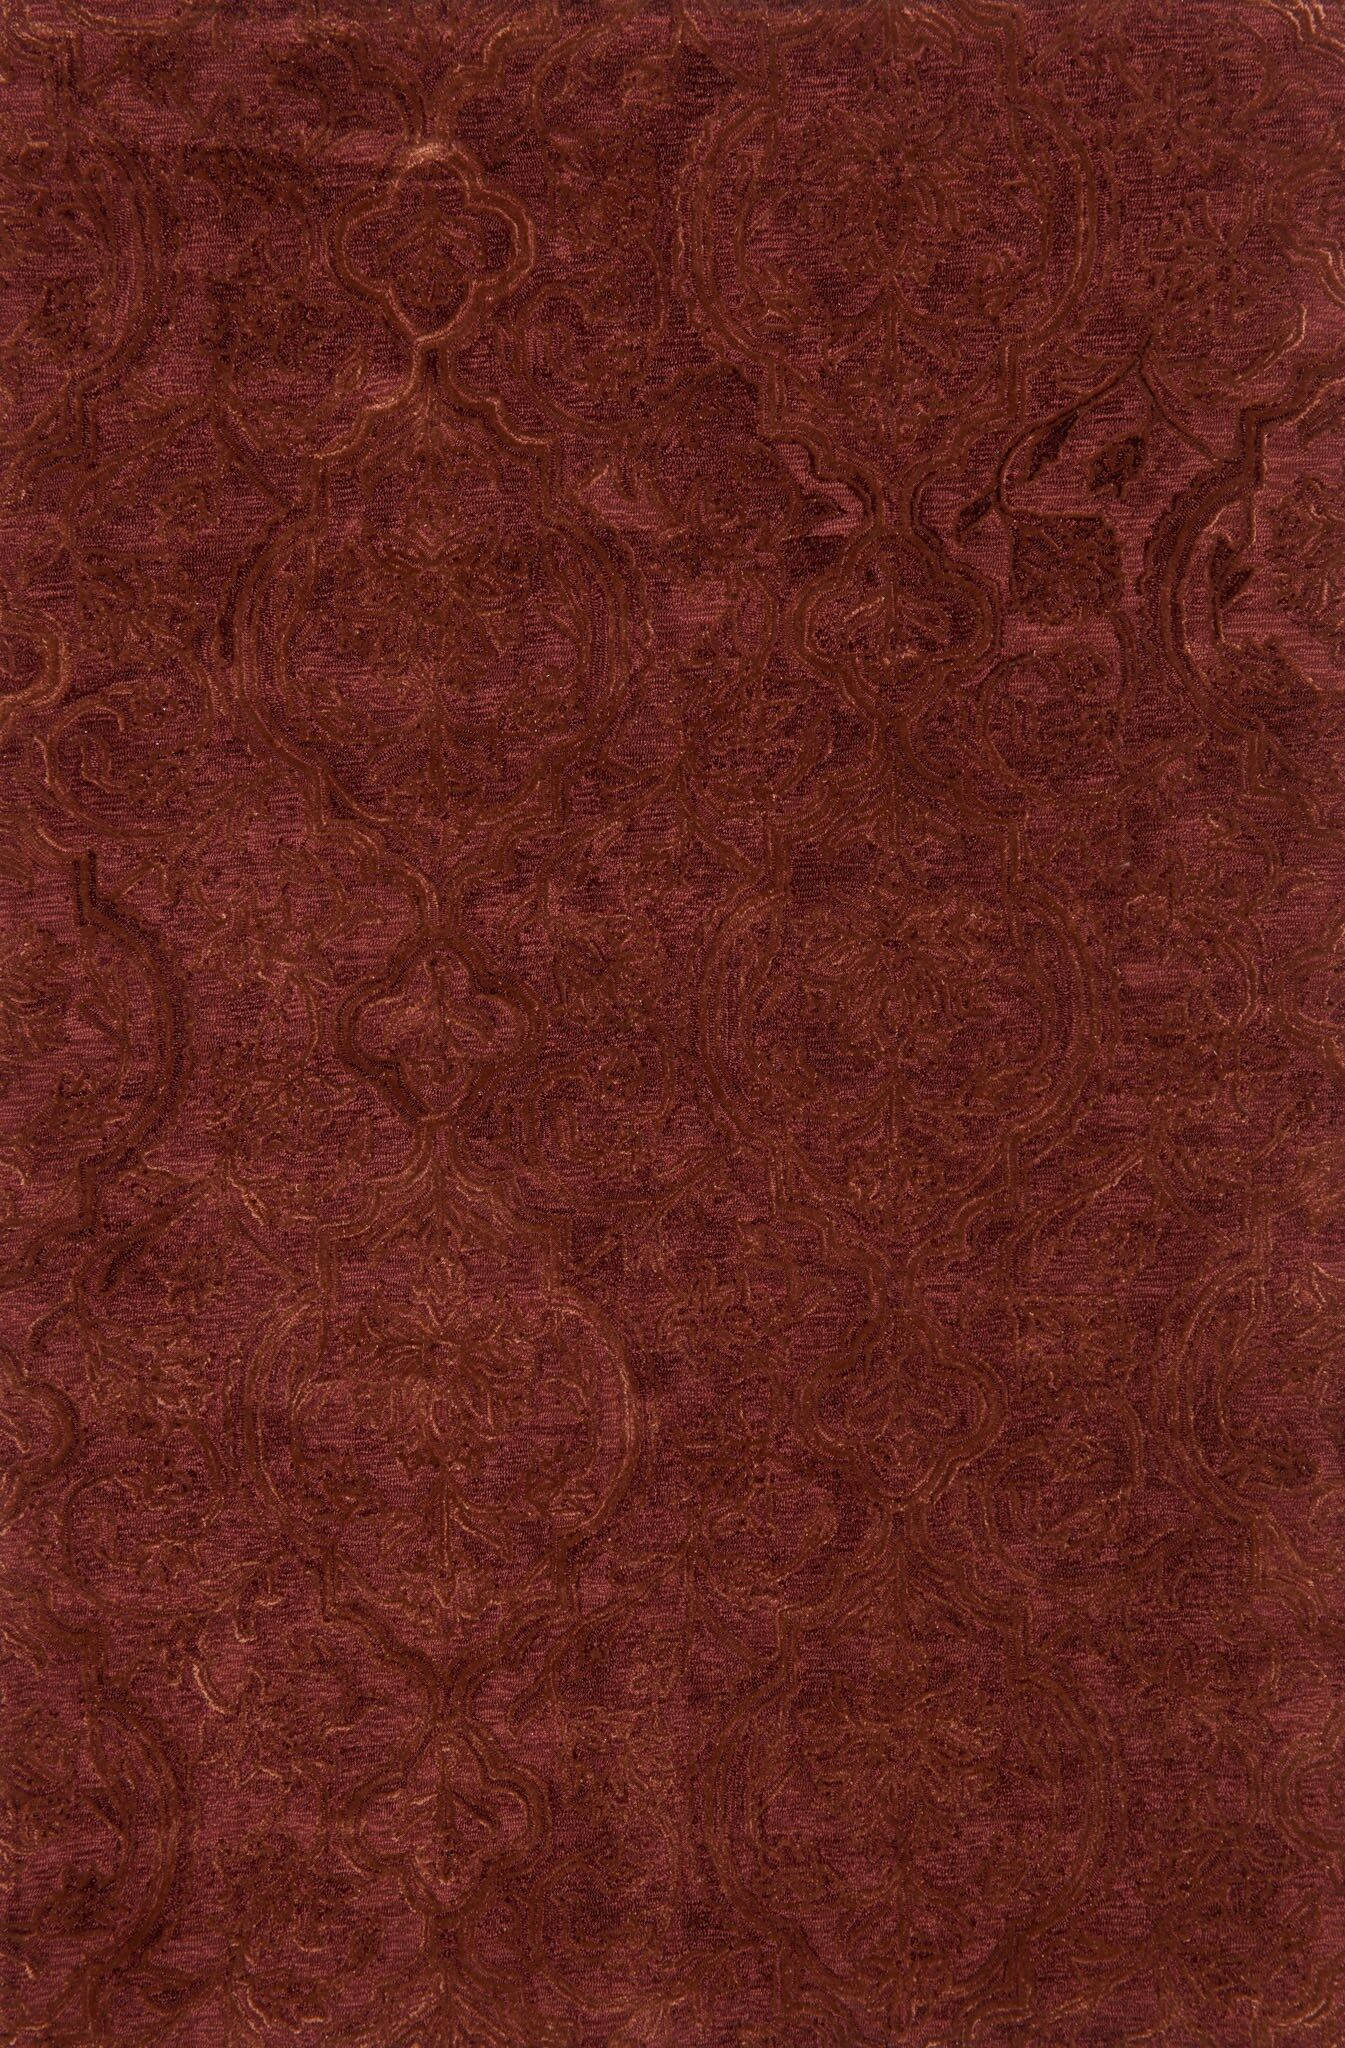 Firger Hand-Tufted Red Area Rug Rug Size: Rectangle 3'6